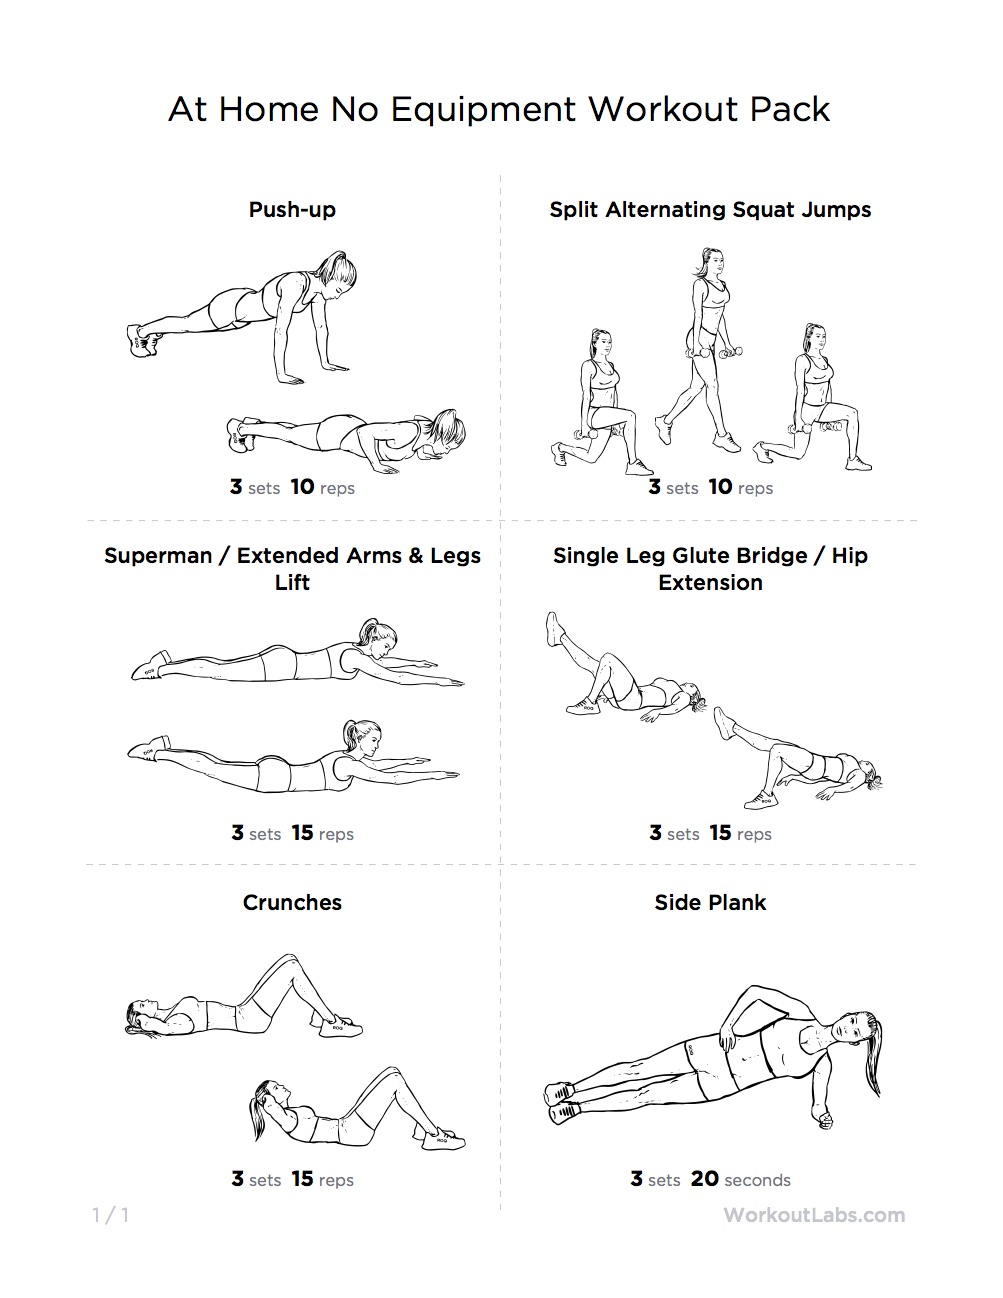 Workout Routines For At Home Without Equipment | EOUA Blog